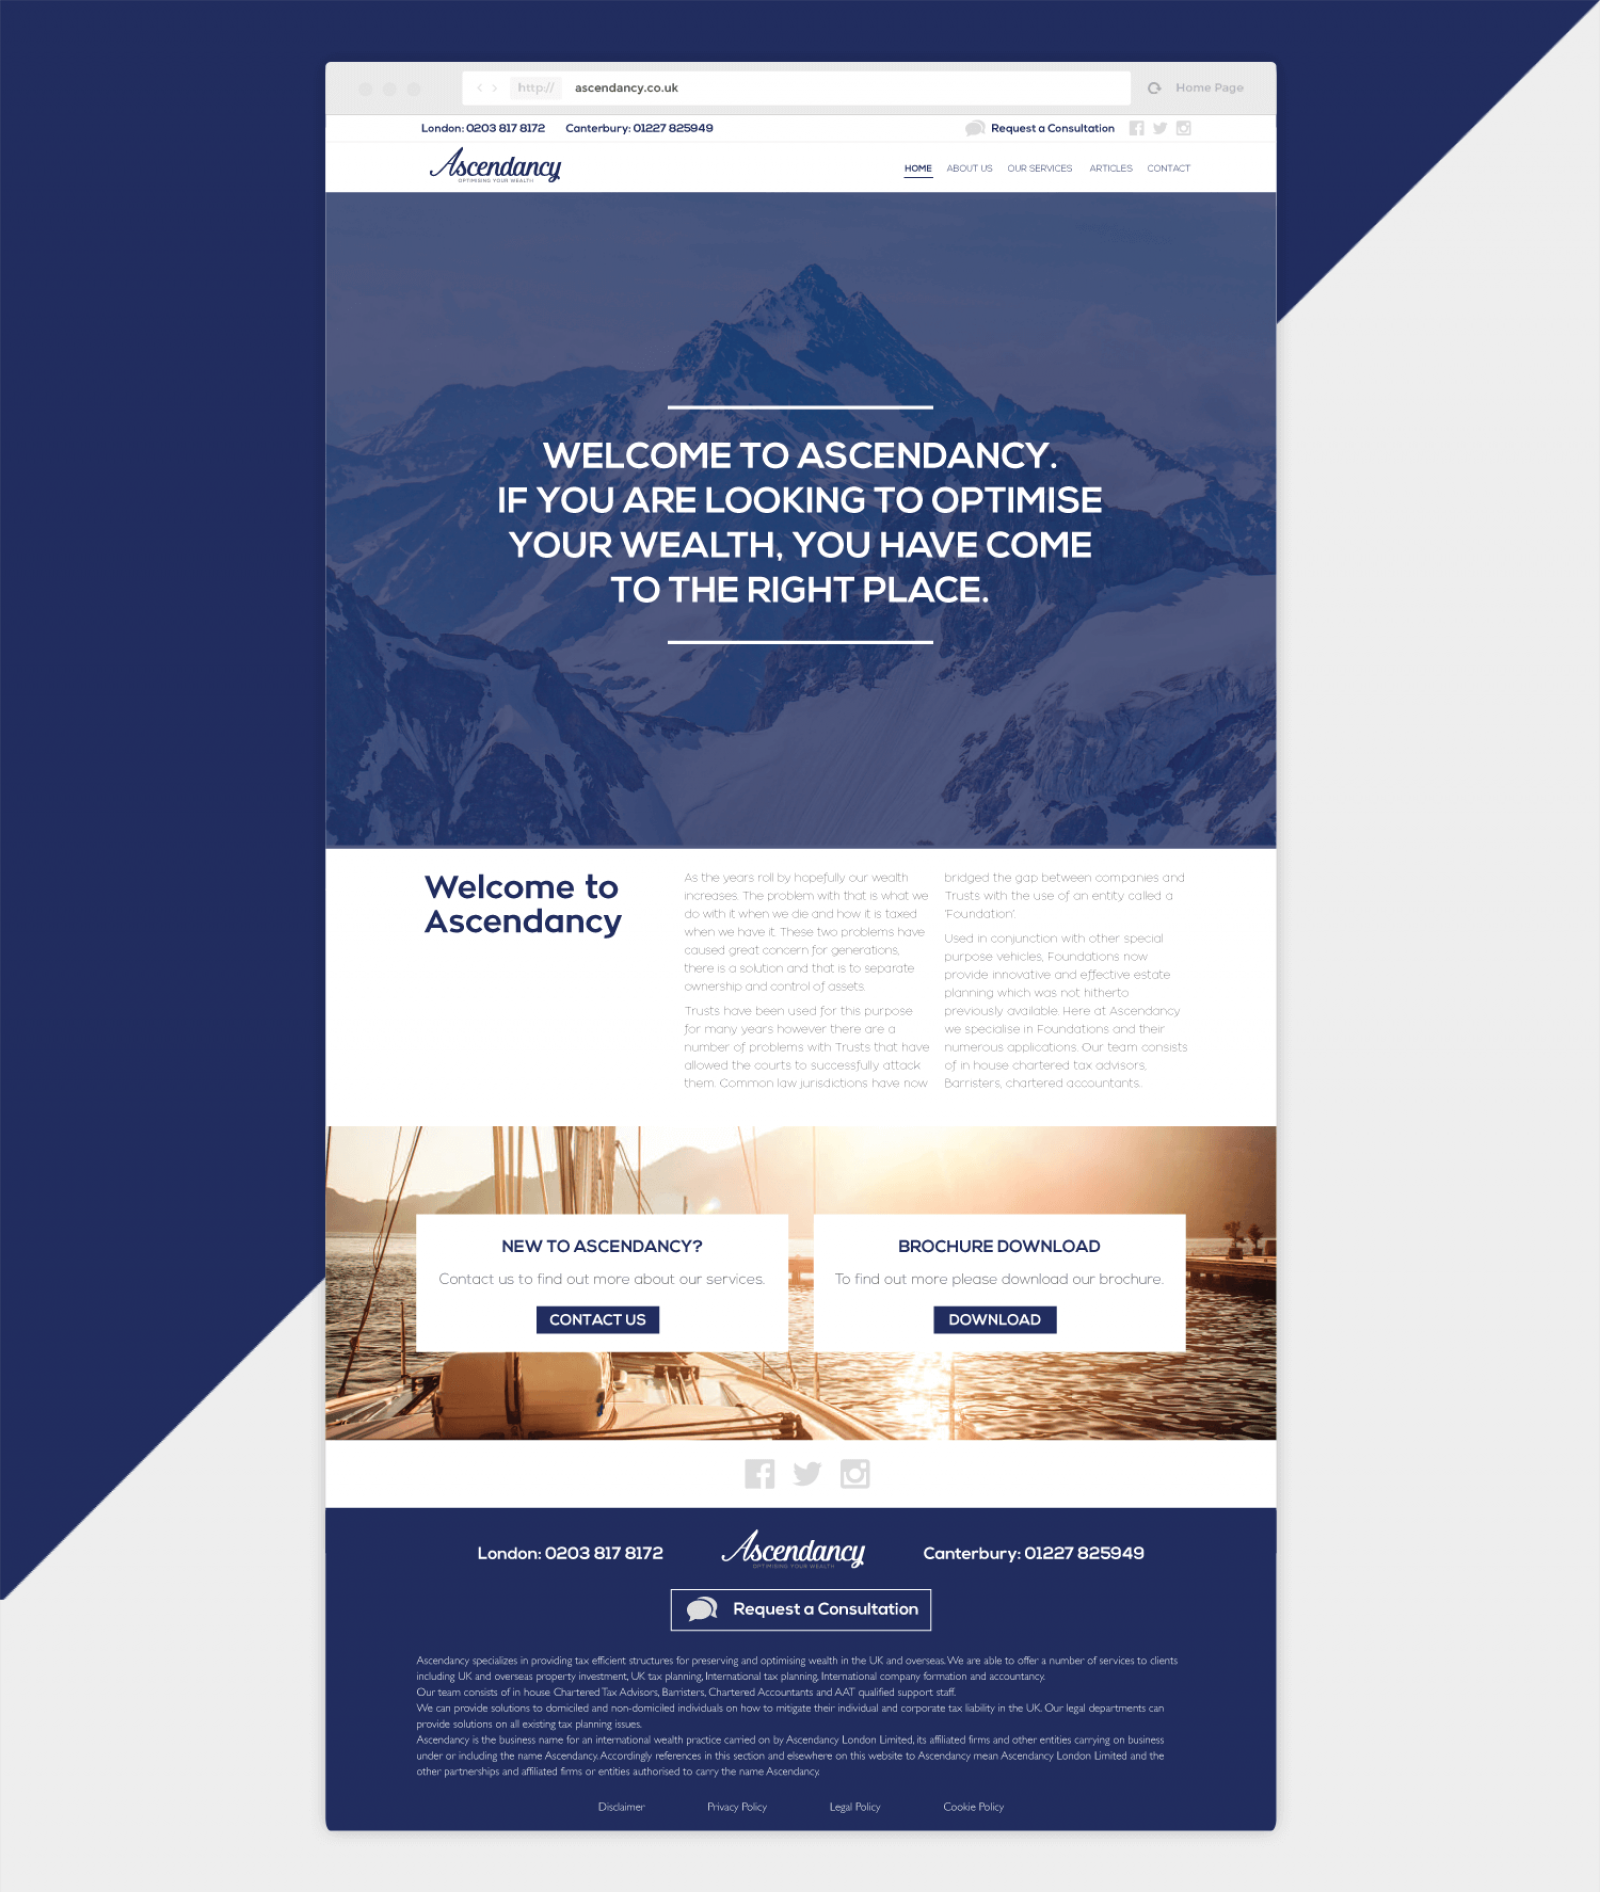 Ascendancy-website-design-agency-graphic-design-canterbury.png